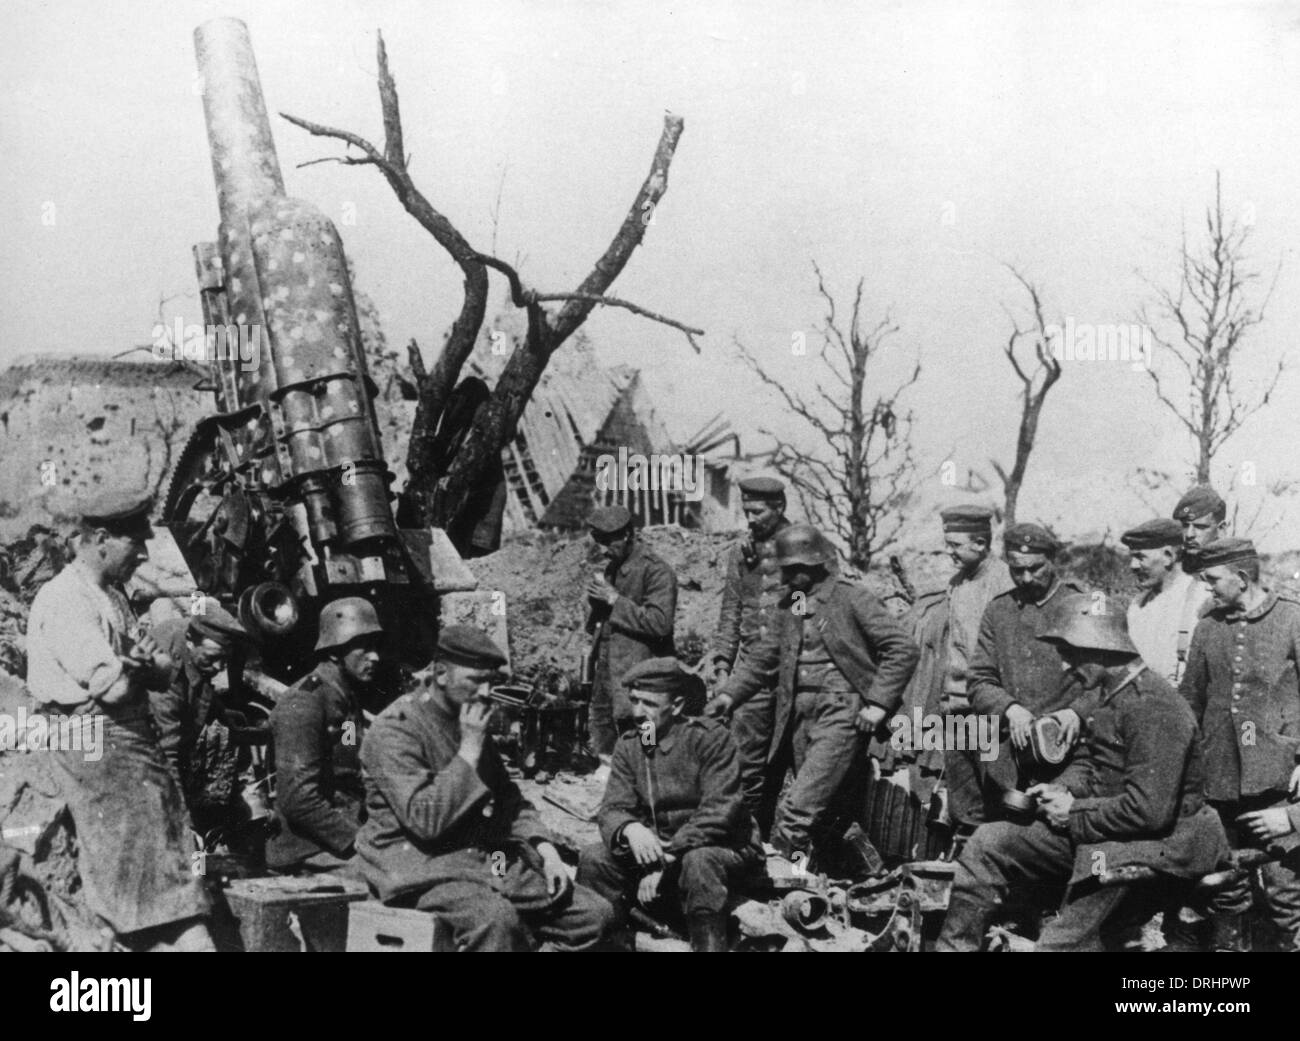 German 15cm howitzer, Picardy, France, WW1 Stock Photo